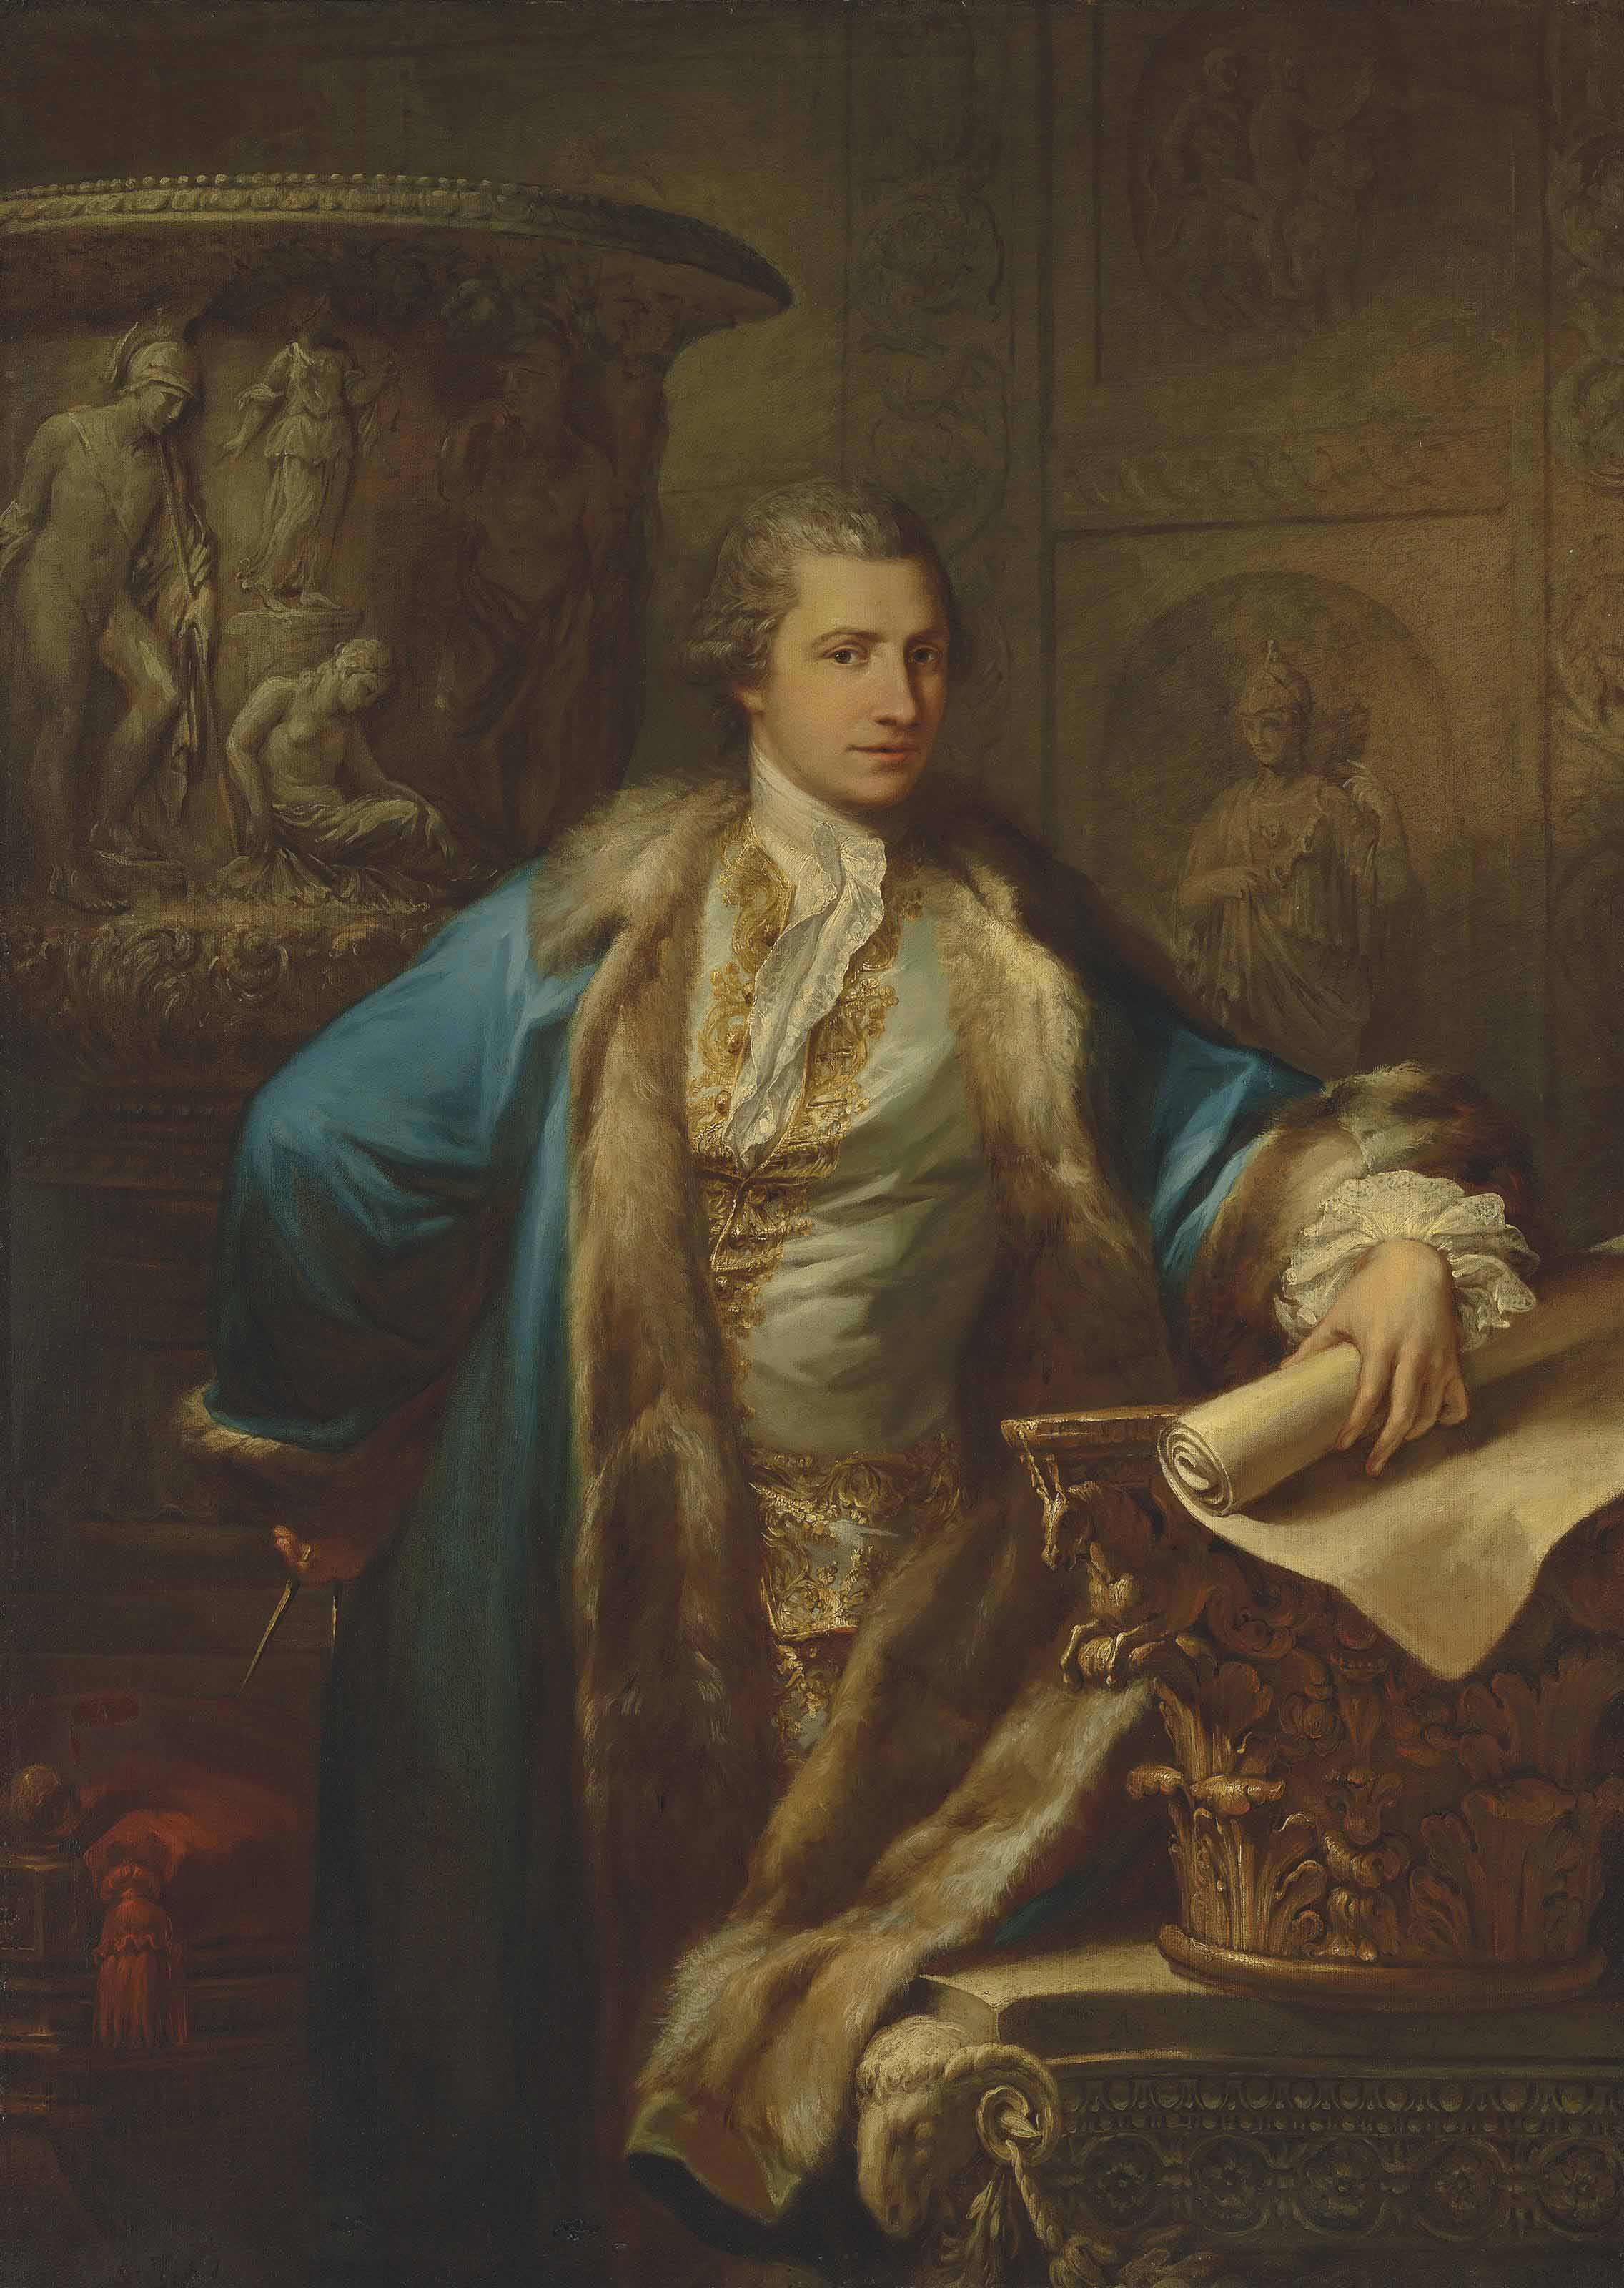 Portrait of James Adam (1732-1794), three-quarter-length, in an embroidered waistcoat and fur-lined blue coat, holding a pair of compasses, and a scroll, leaning on a capital, in an interior